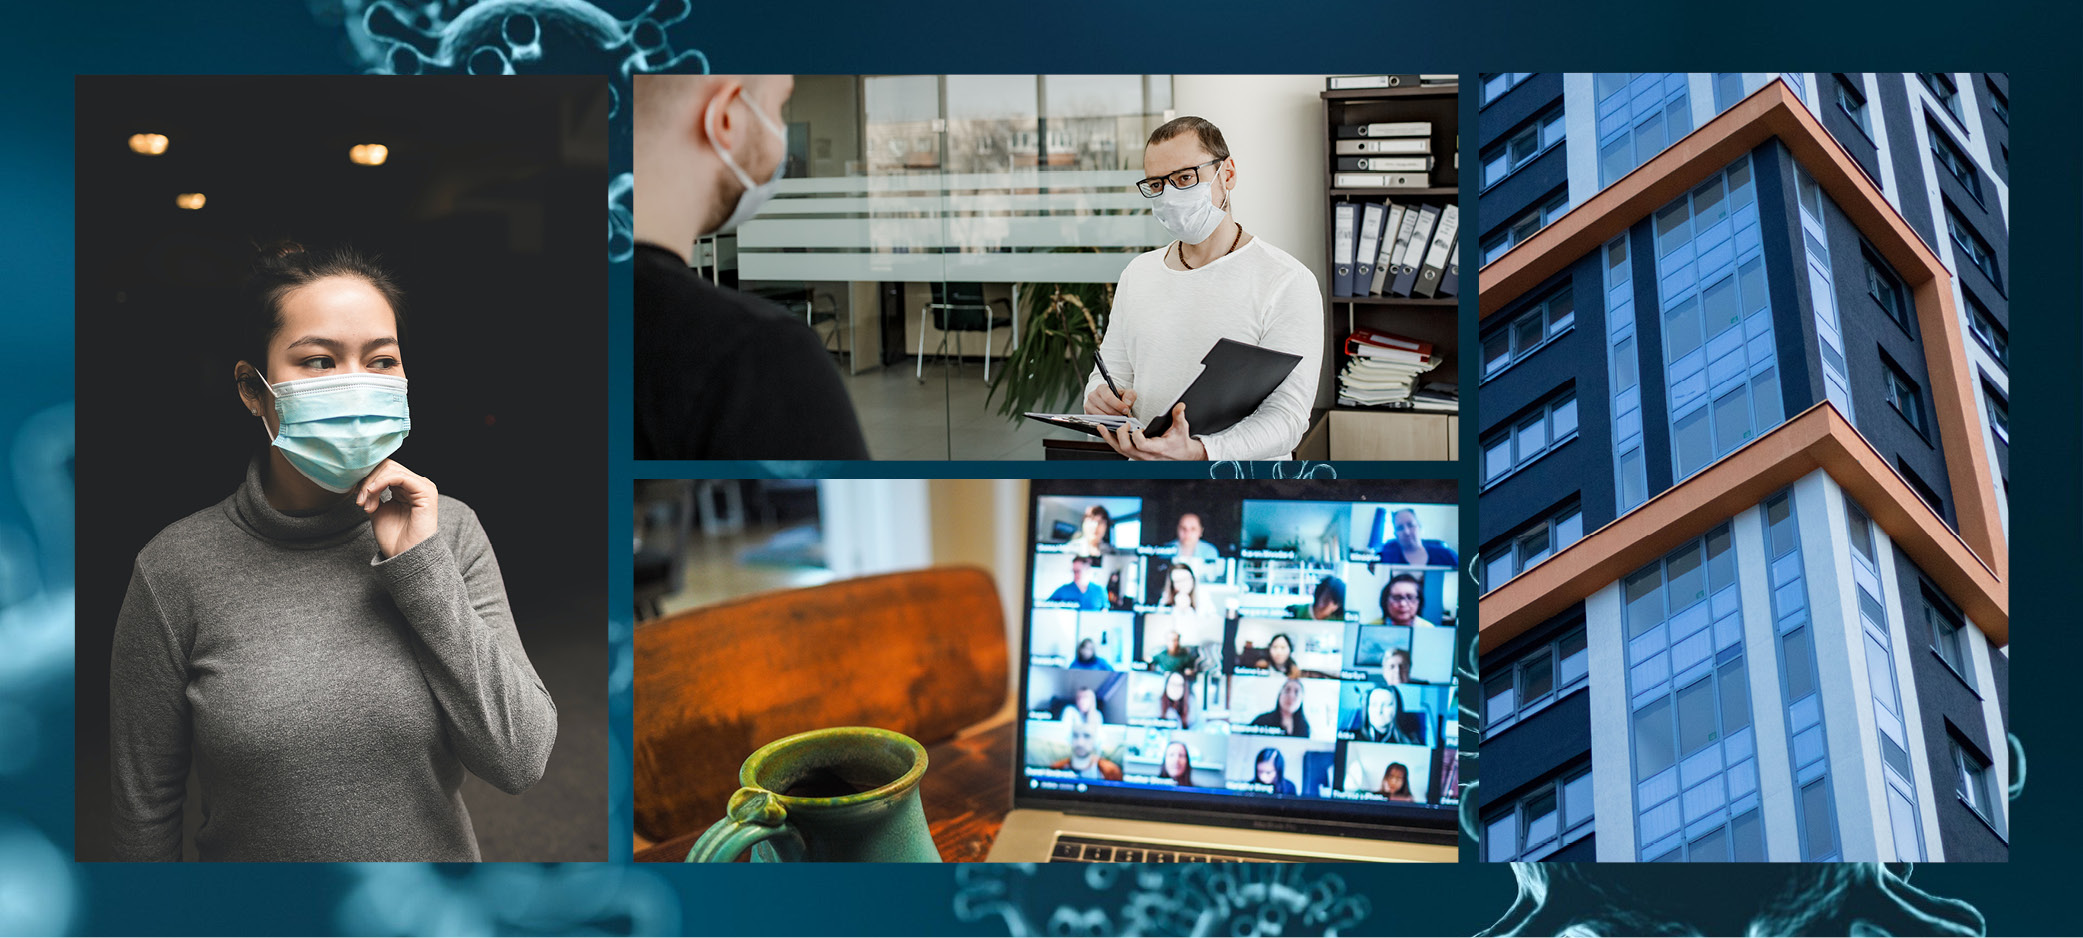 Images clockwise from left: a woman adjusting a face mask; two men wearing masks interact in a workplace; a modern apartment building; a zoom call on a laptop.